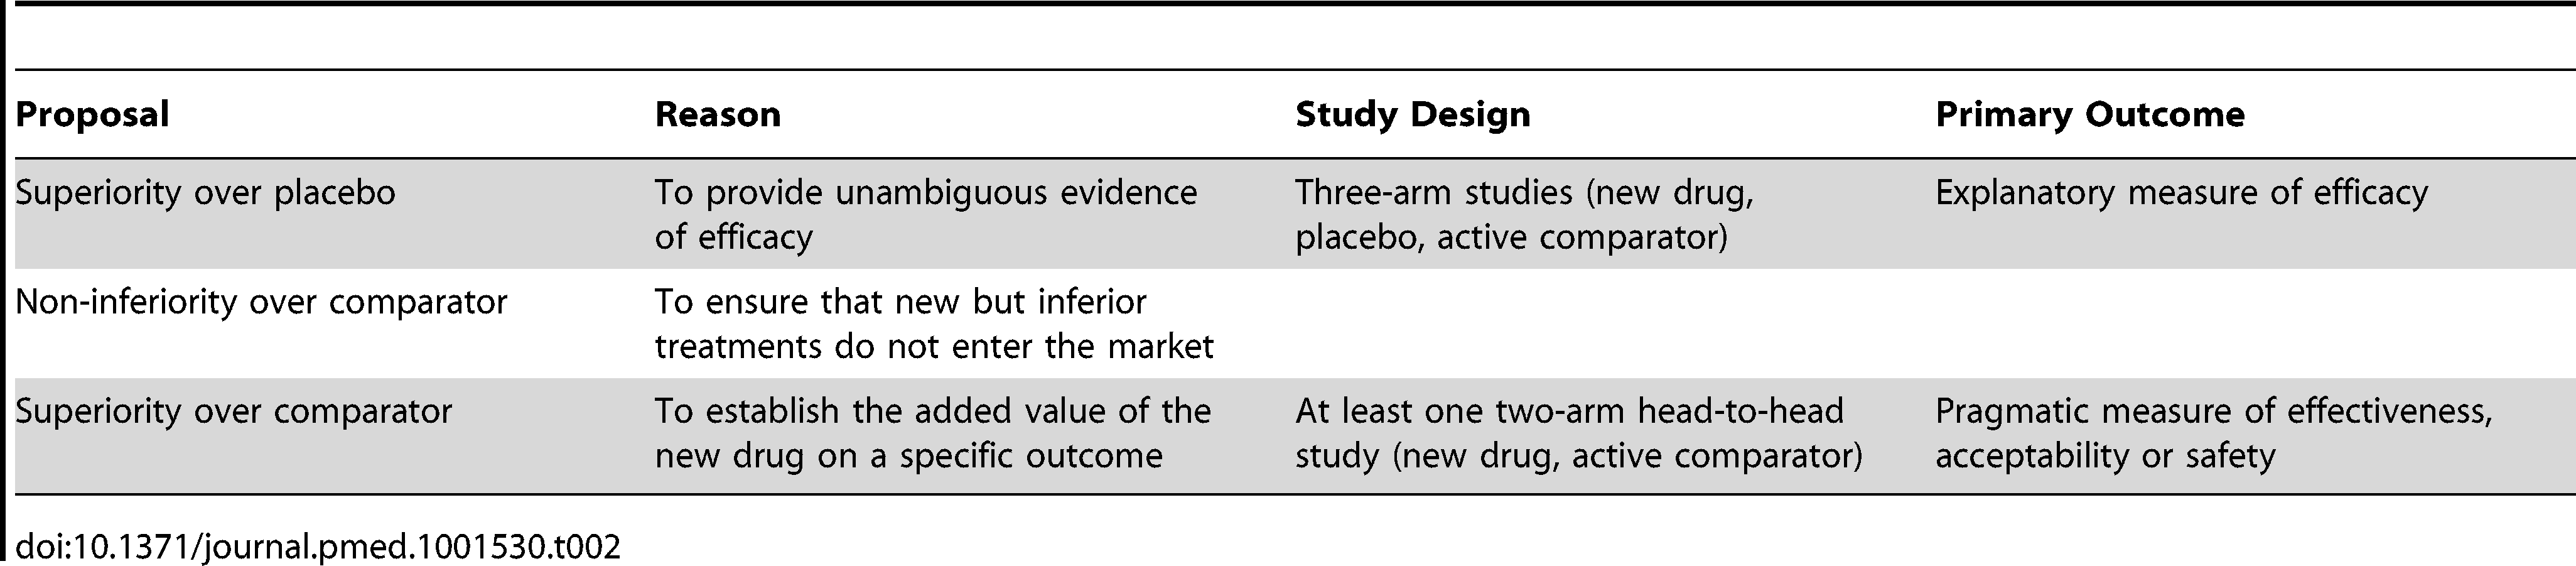 Summary of the main features of suggested EMA rules that should govern the approval of new medicines for disorders where effective medicines are already in use.